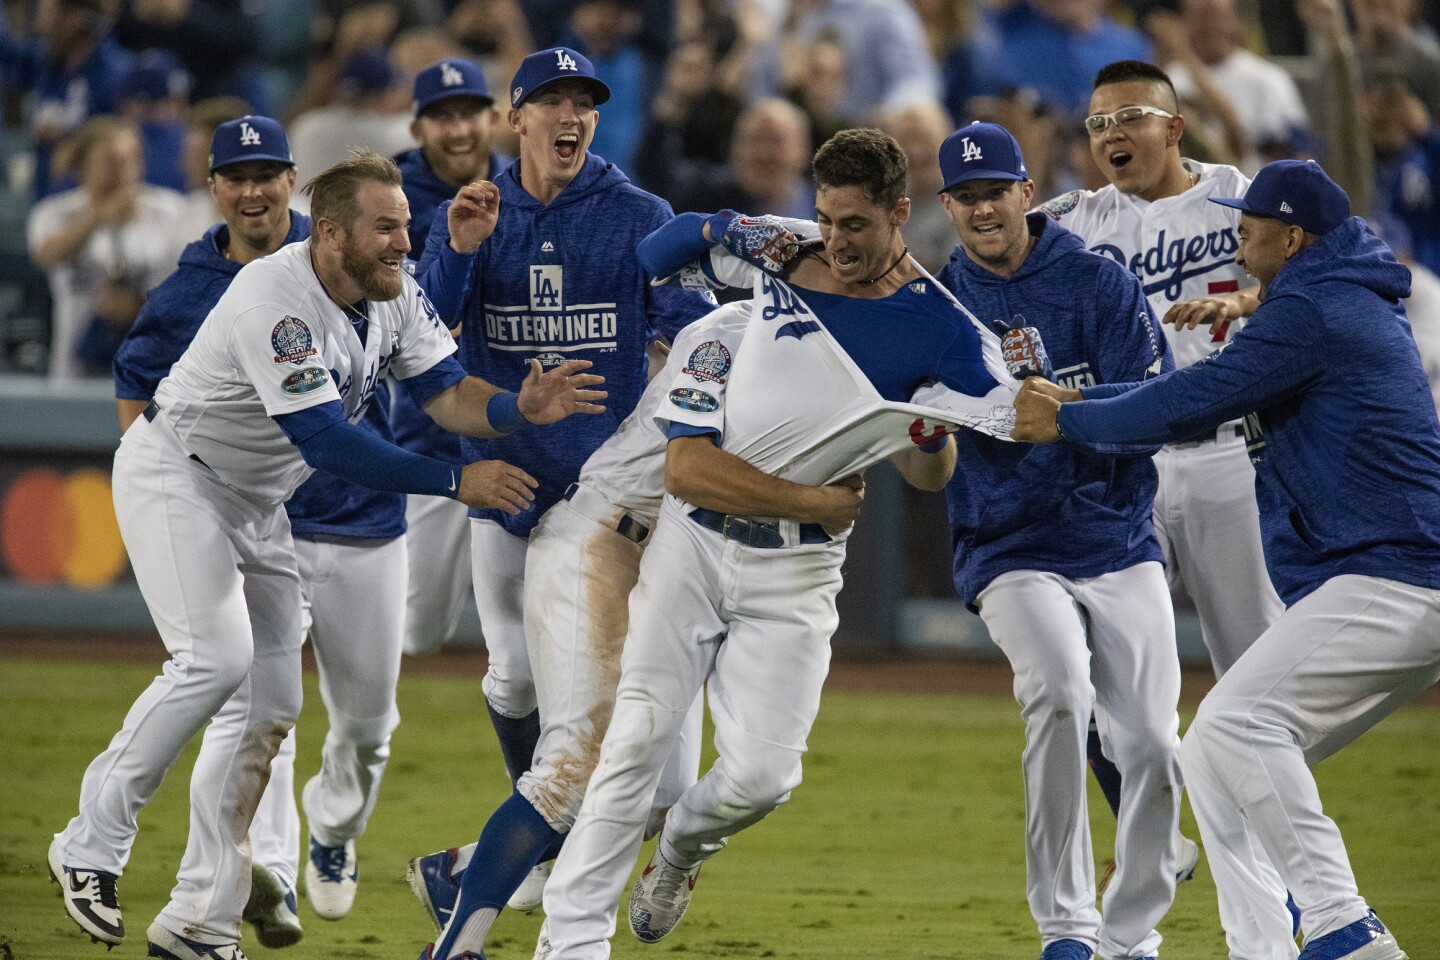 Teammates mob Dodgers center fielder Cody Bellinger after he hit the game winning RBI in the 13th inning during Game 4 of the NLCS at Dodger Stadium on October 16, 2018.